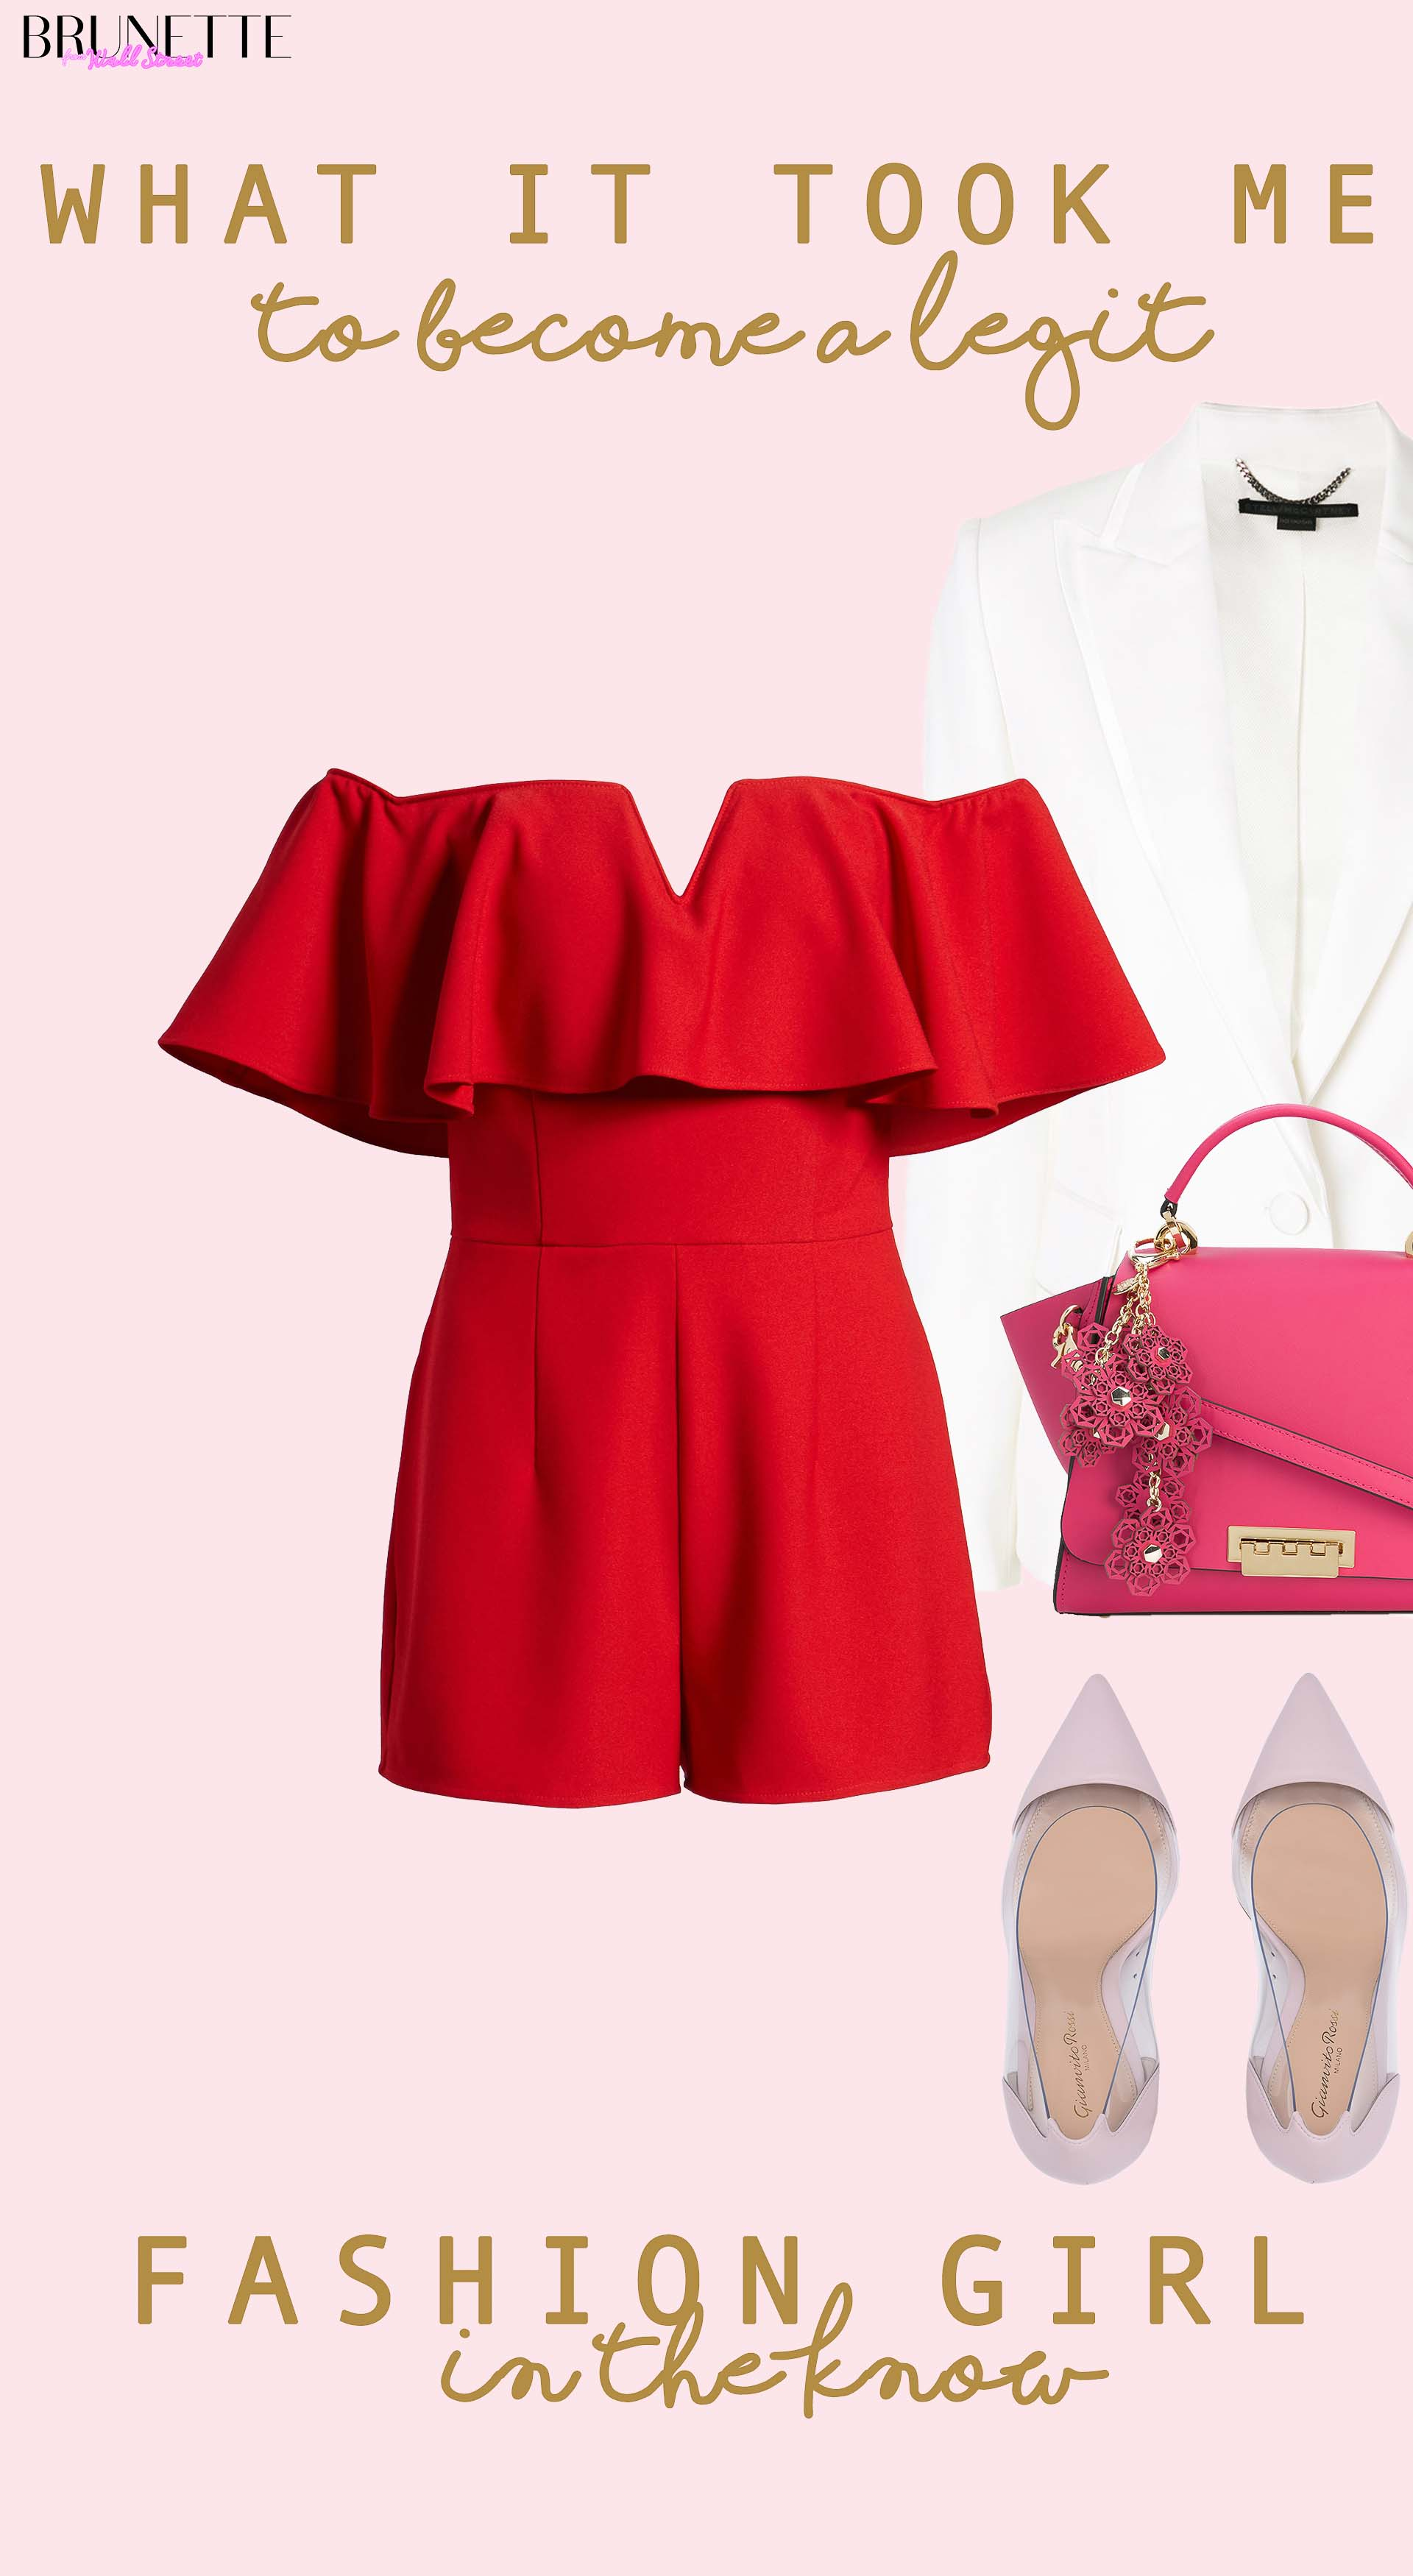 off the shoulder red romper, Gianvito Rossi pumps, Zac Posen pink tote, white blazer with text overlay what it took me to become a legit fashion girl in the know